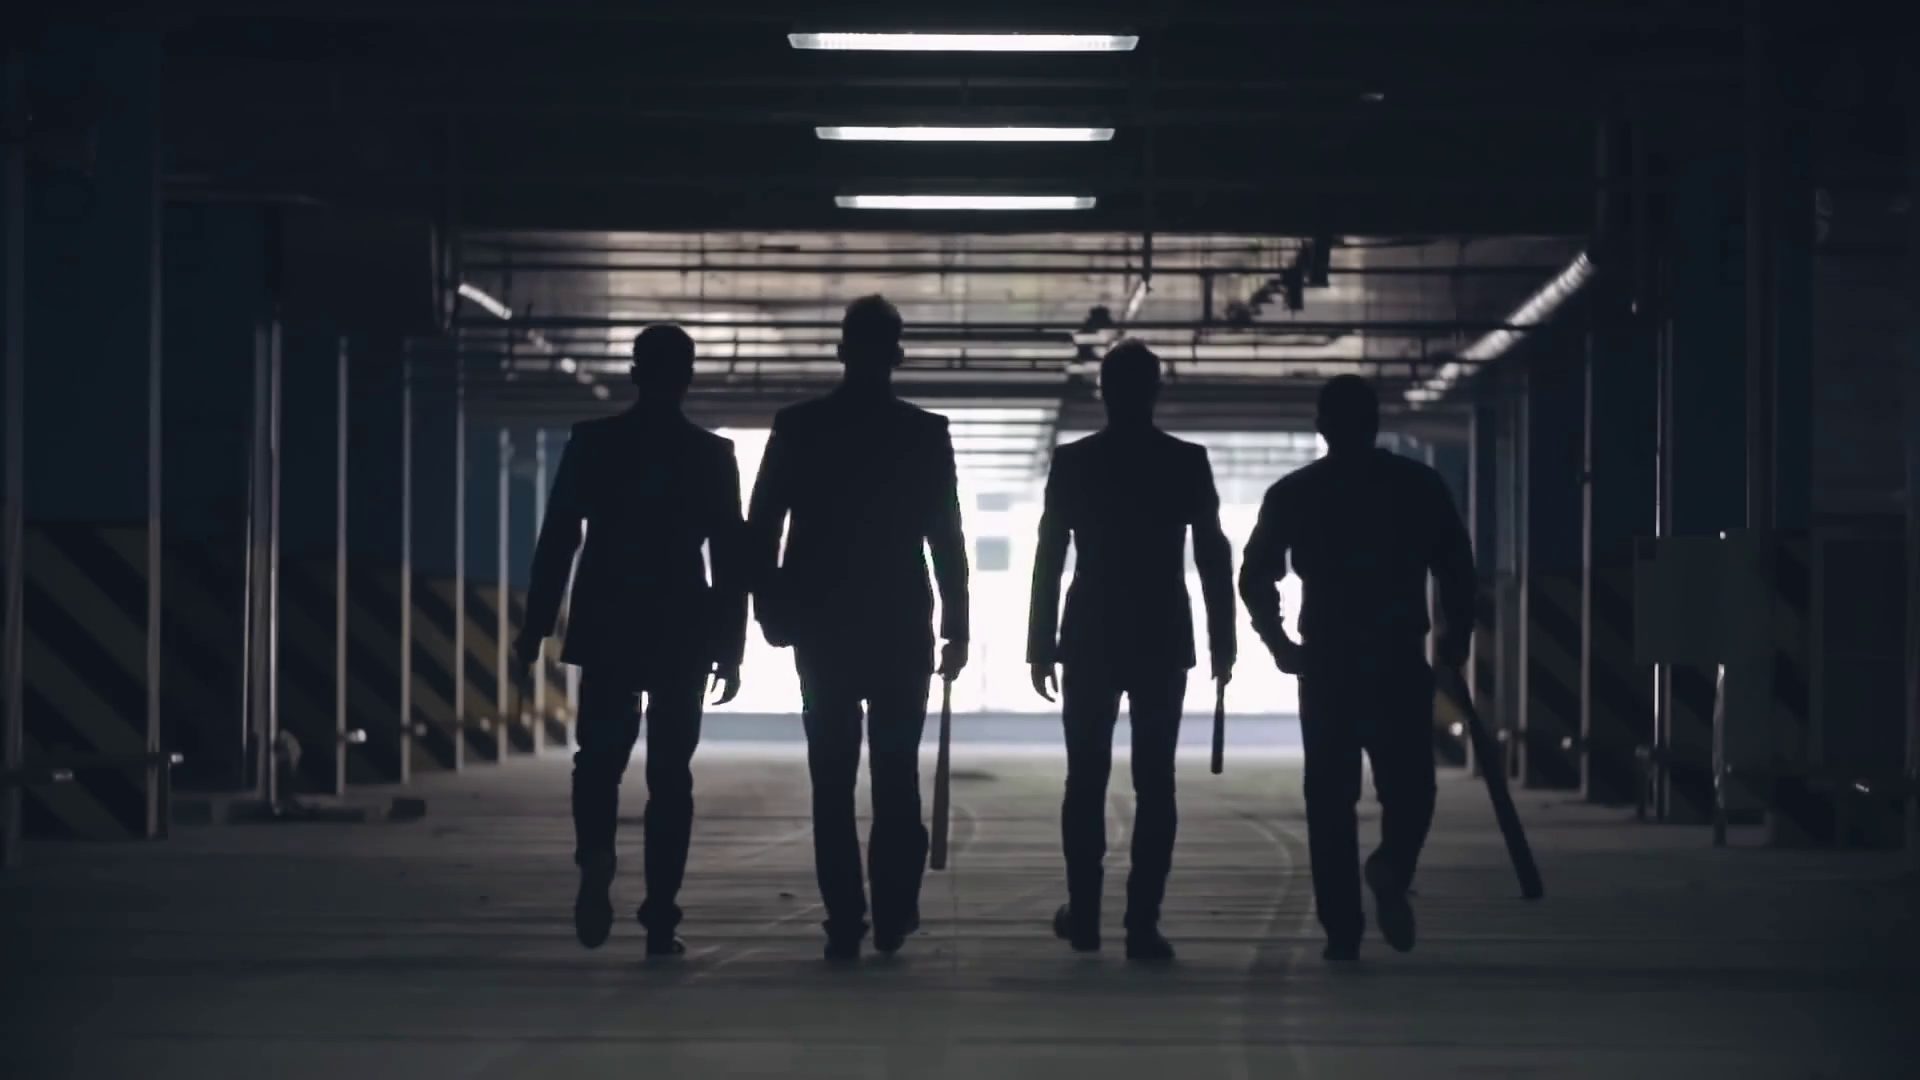 Lockdown of silhouettes of four confident men in suits holding baseball bats walking towards exit of parking lot Stock Video Footage - Storyblocks